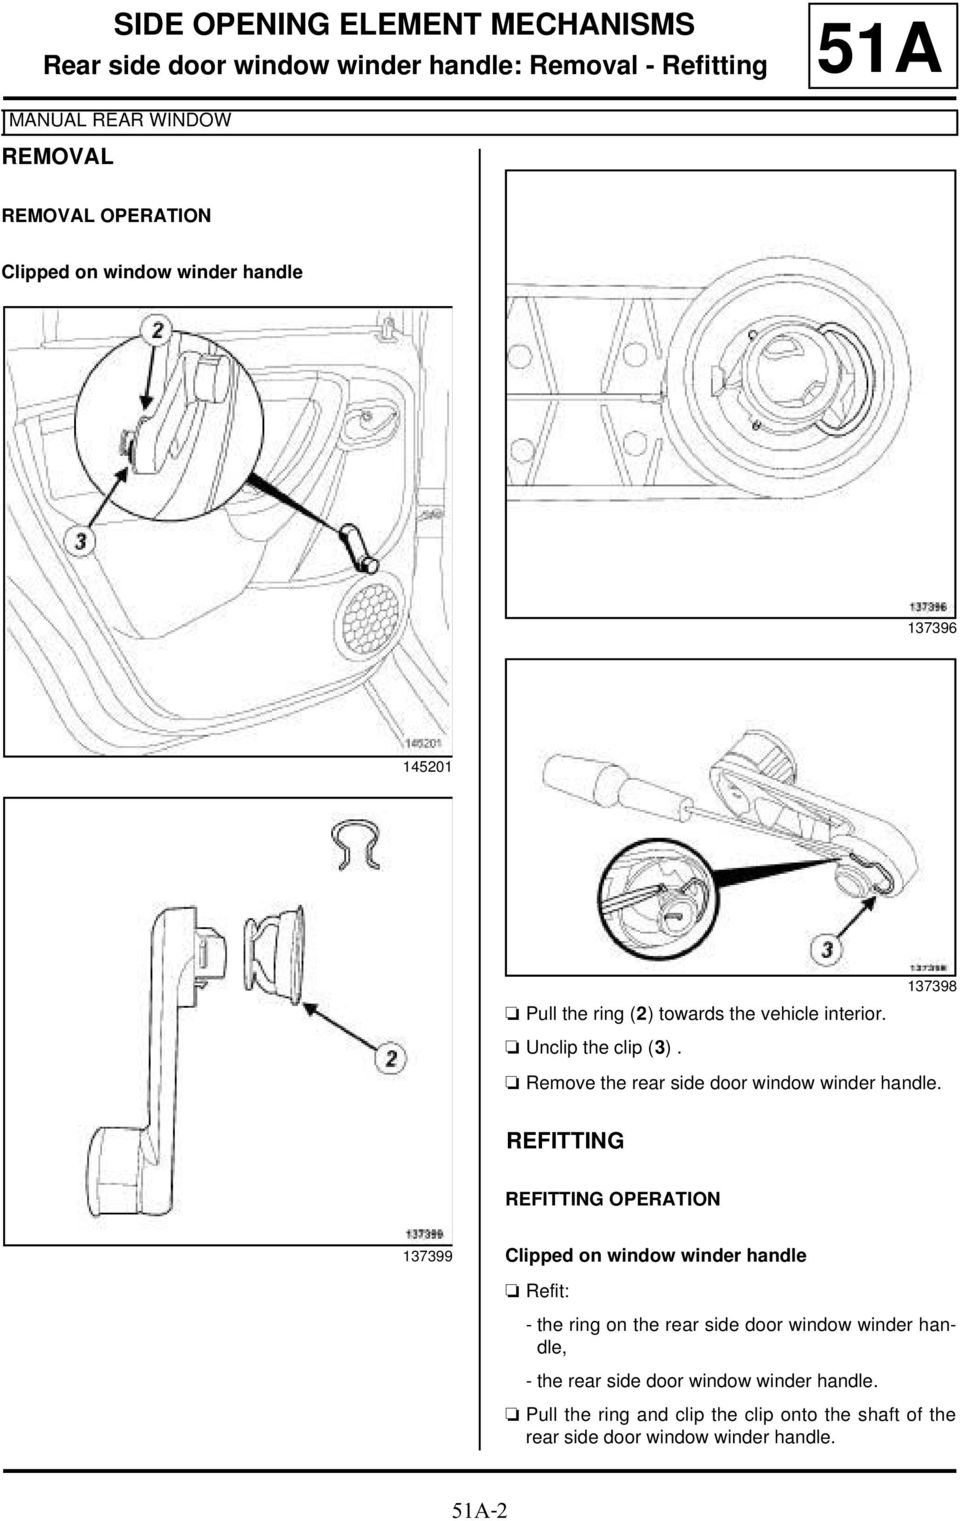 137398 a Remove the rear side door window winder handle.